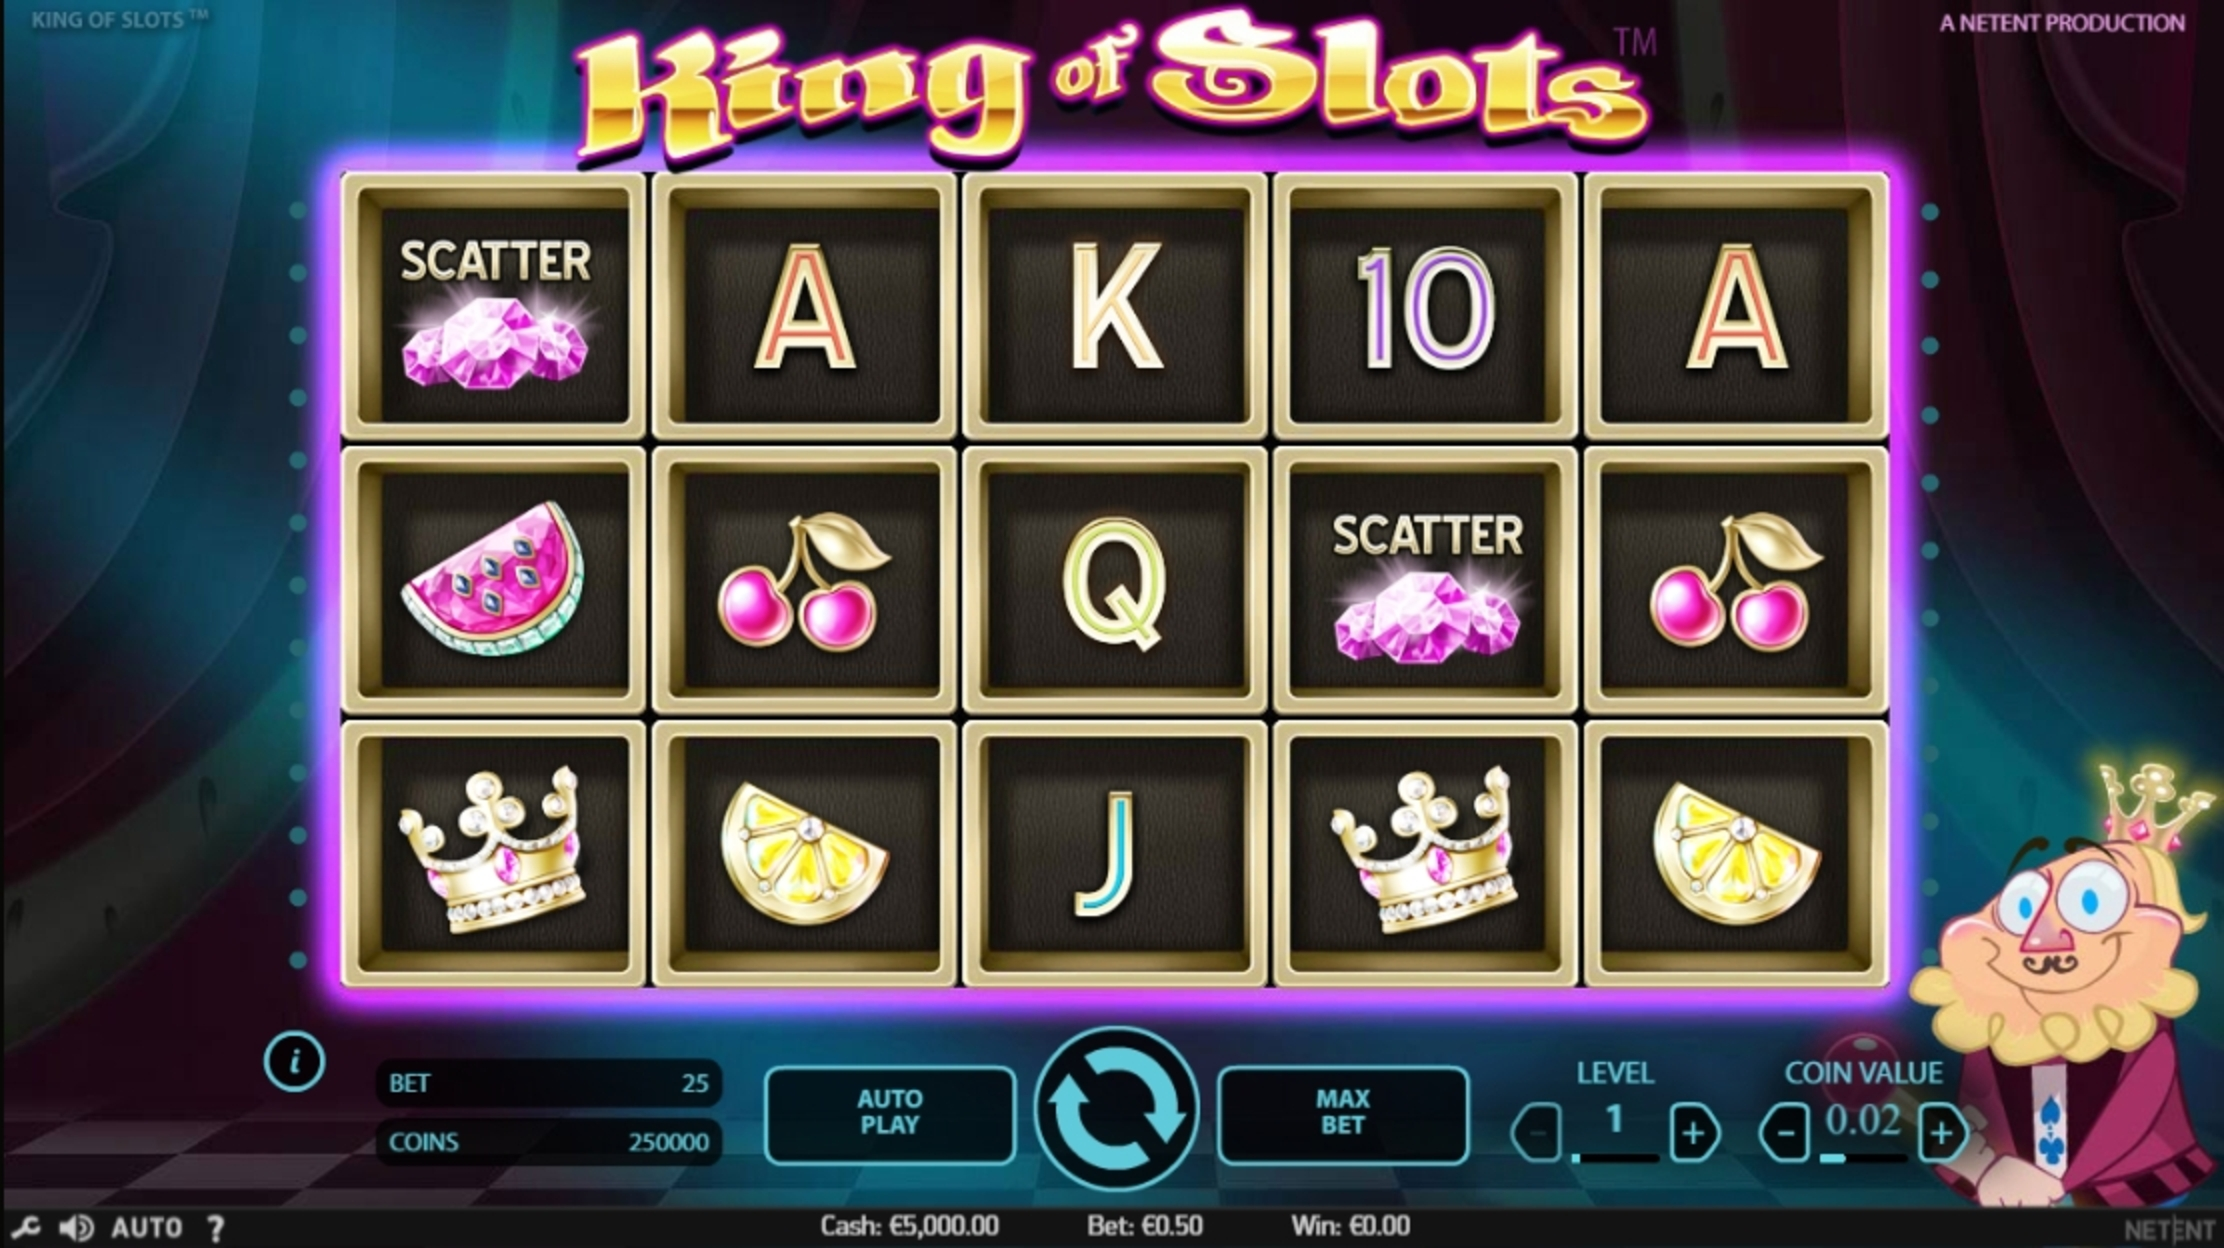 Reels in King of Slots Slot Game by NetEnt